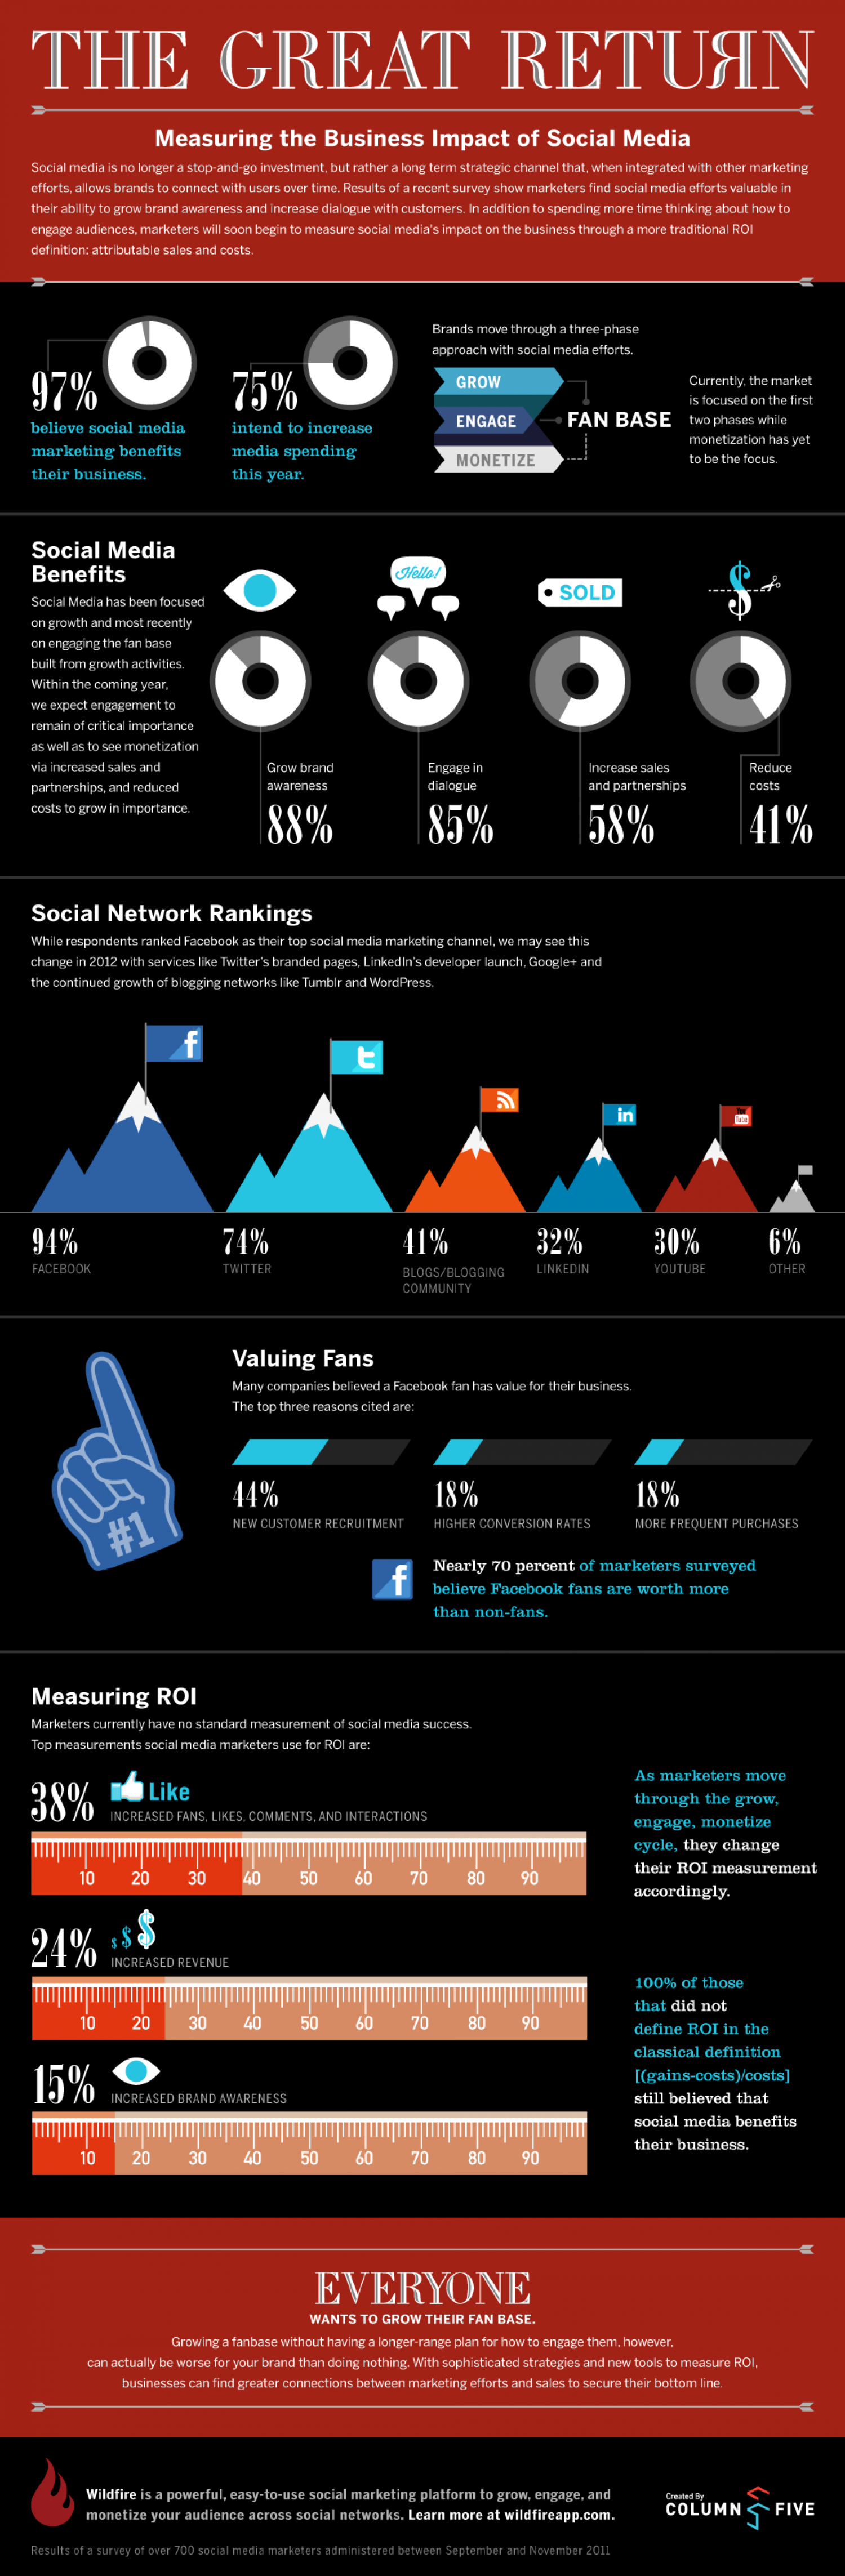 Measuring the Business Impact of Social Media Infographic